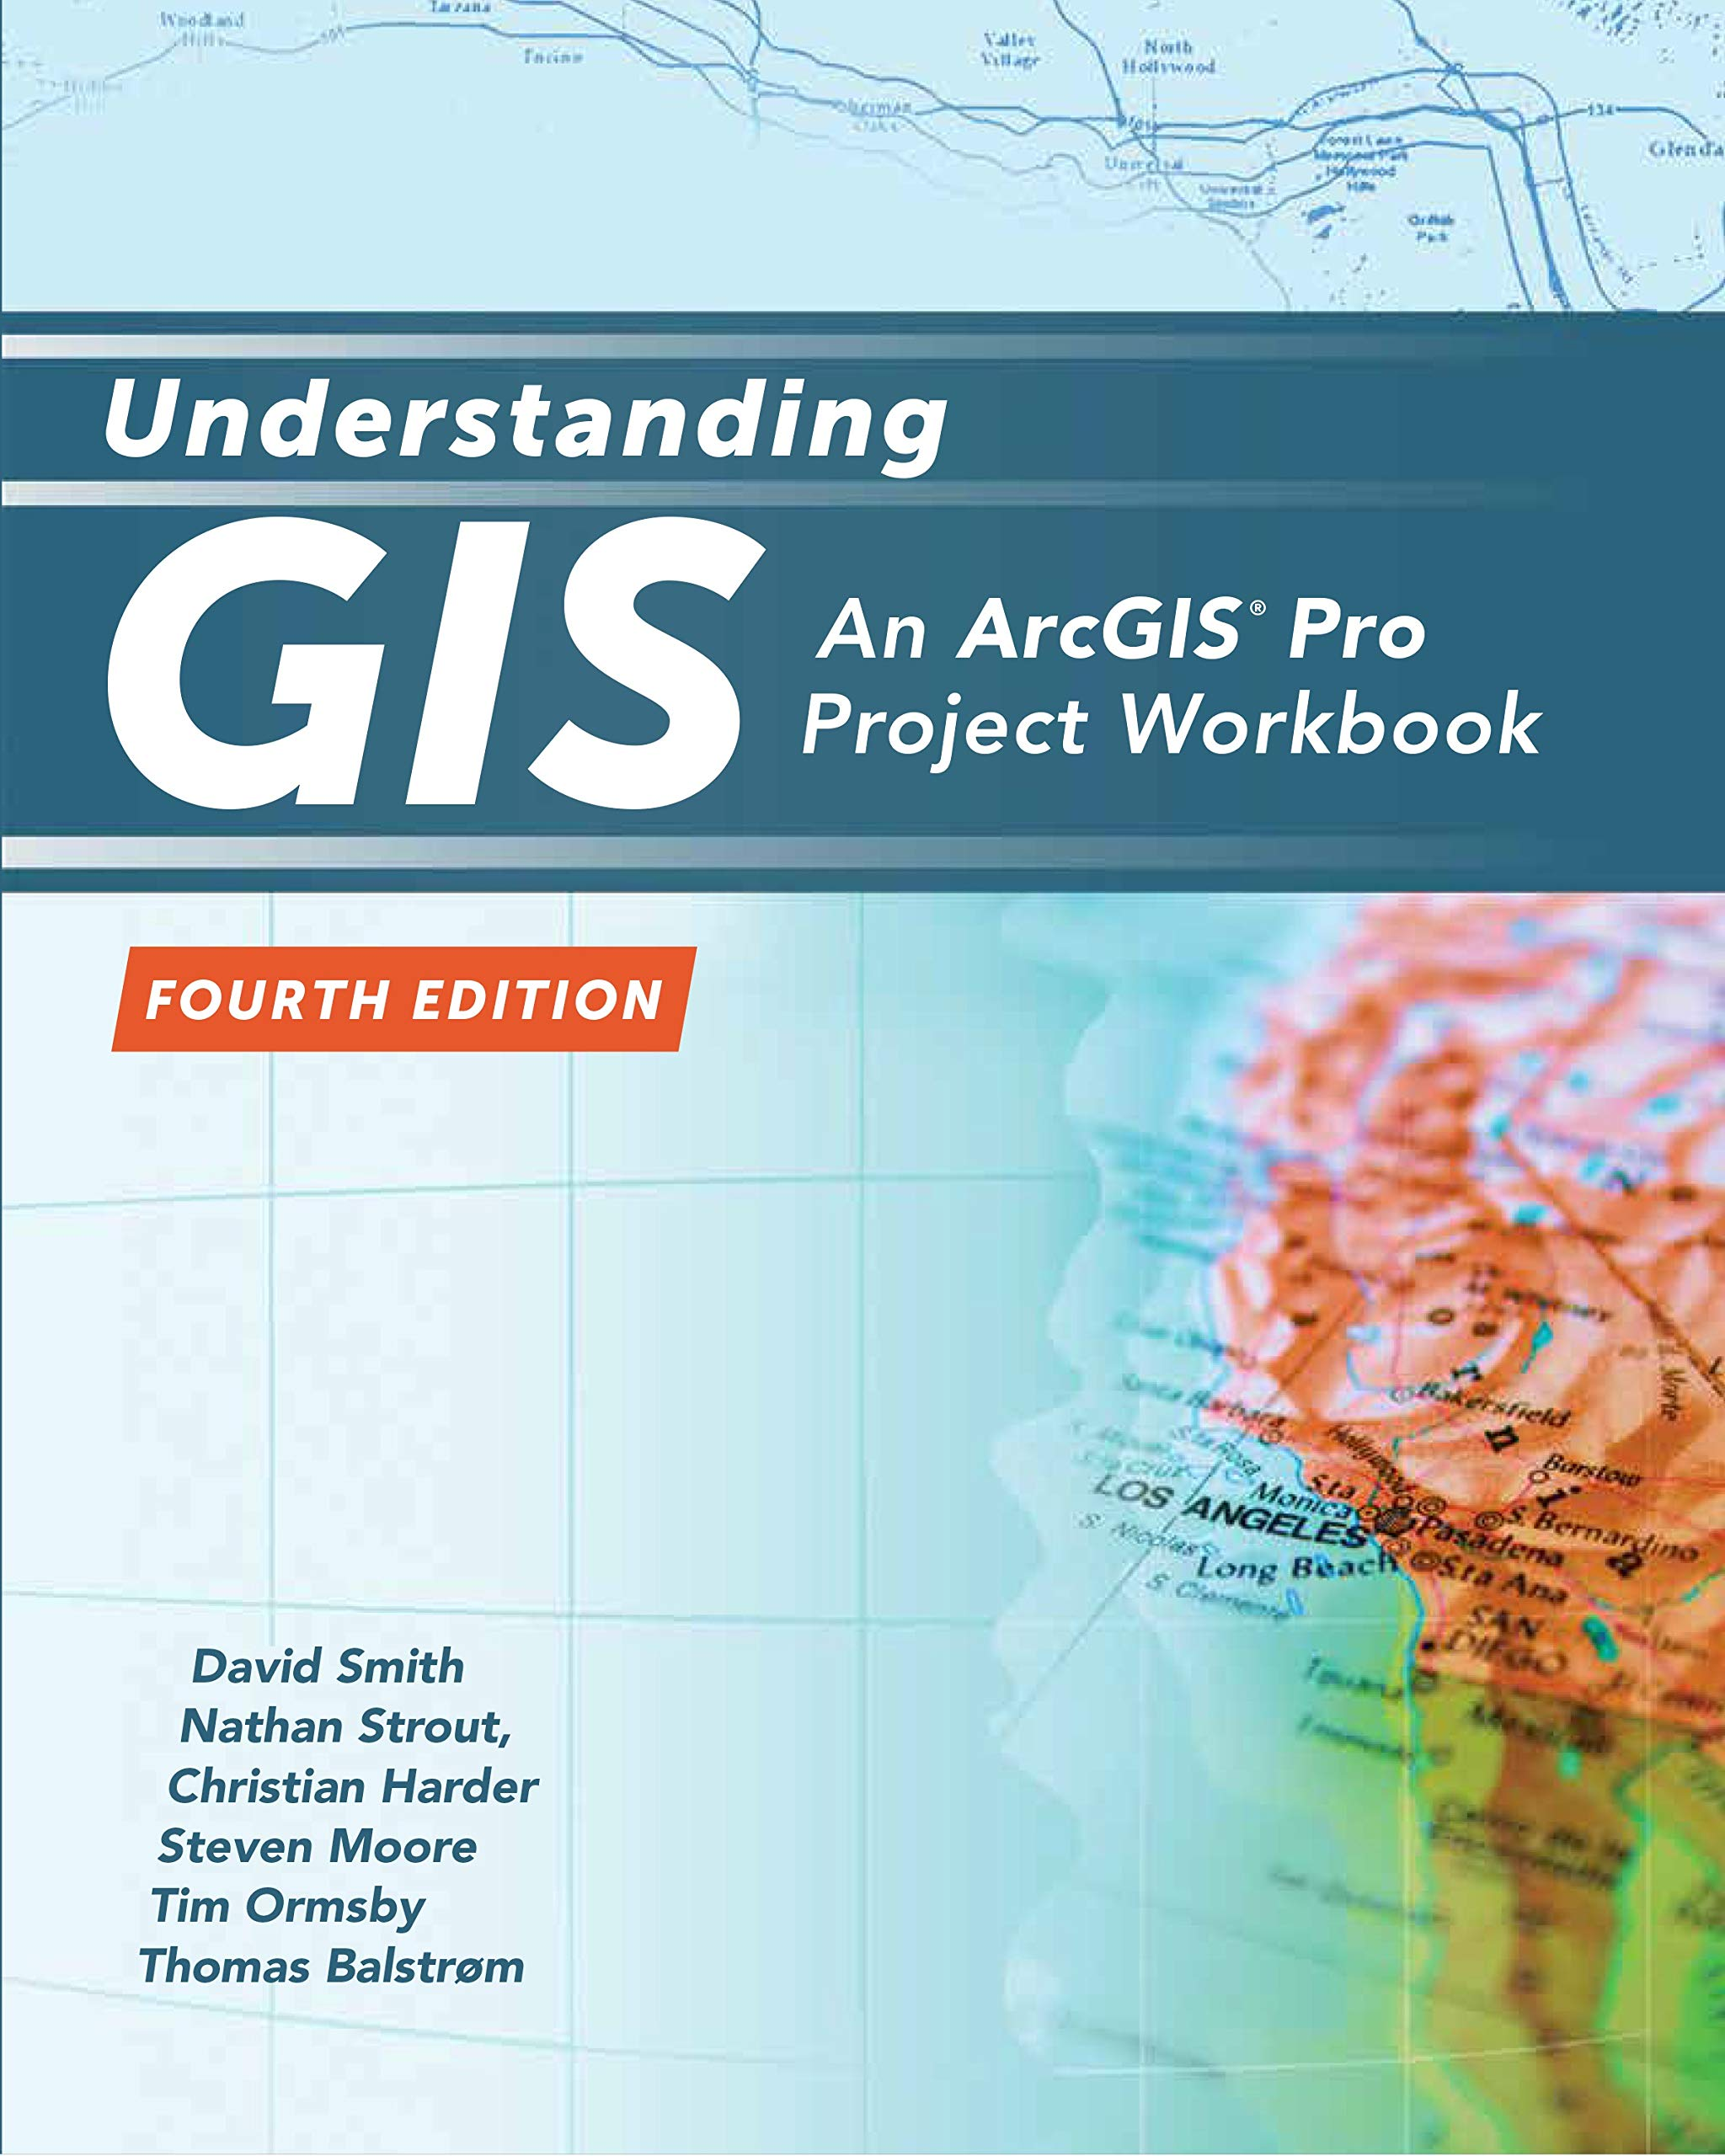 Image OfUnderstanding GIS: An ArcGIS Pro Project Workbook